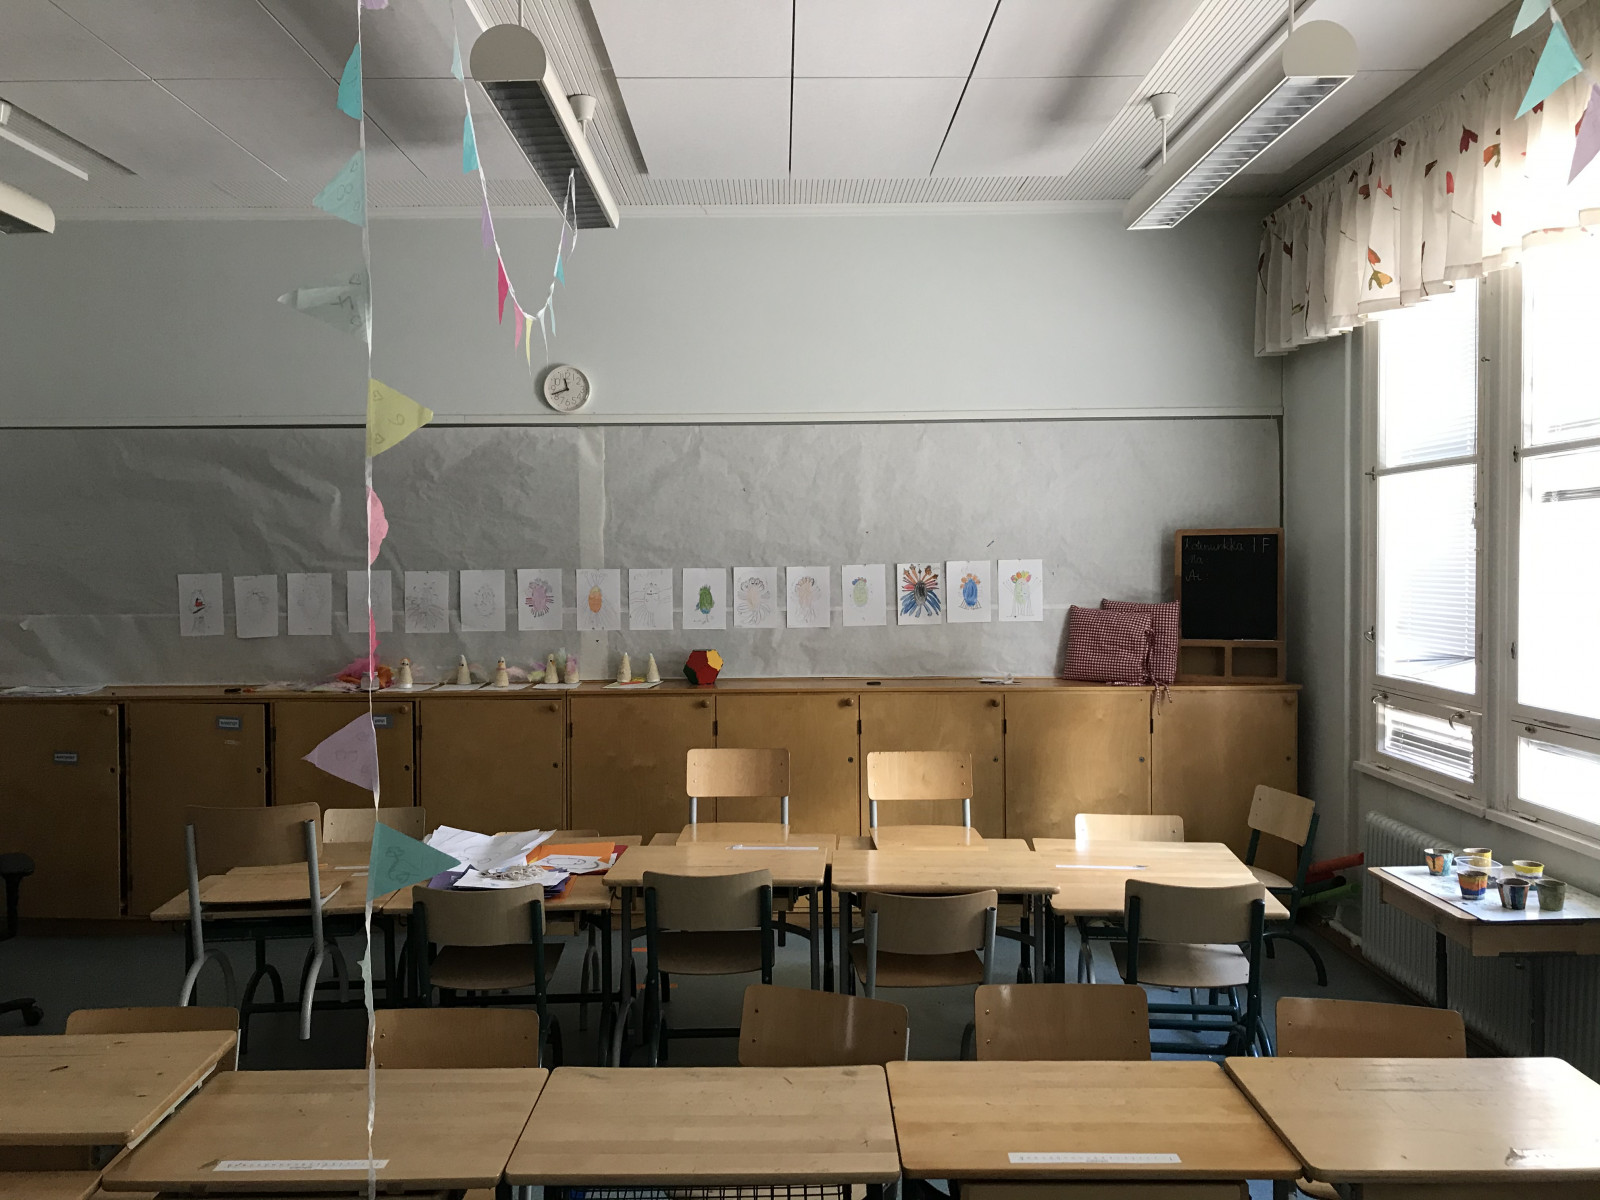 An empty classroom. There are decorations like streamers and pictures around.